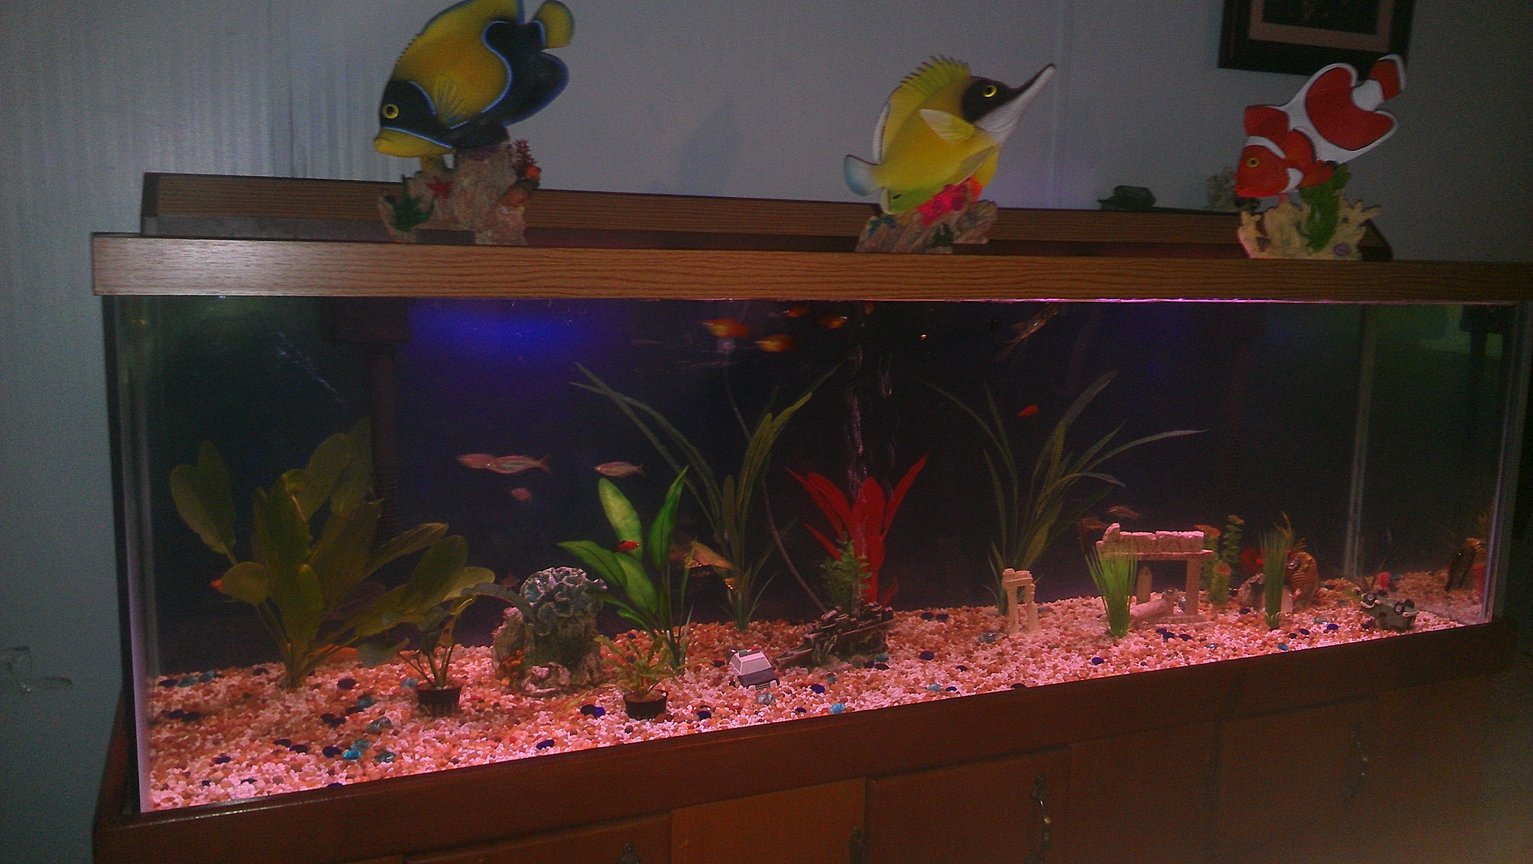 fish tank picture - My love brought some aquarium decorations home today. He likes them on top of the tank. I want to put them in the water. What do you think?